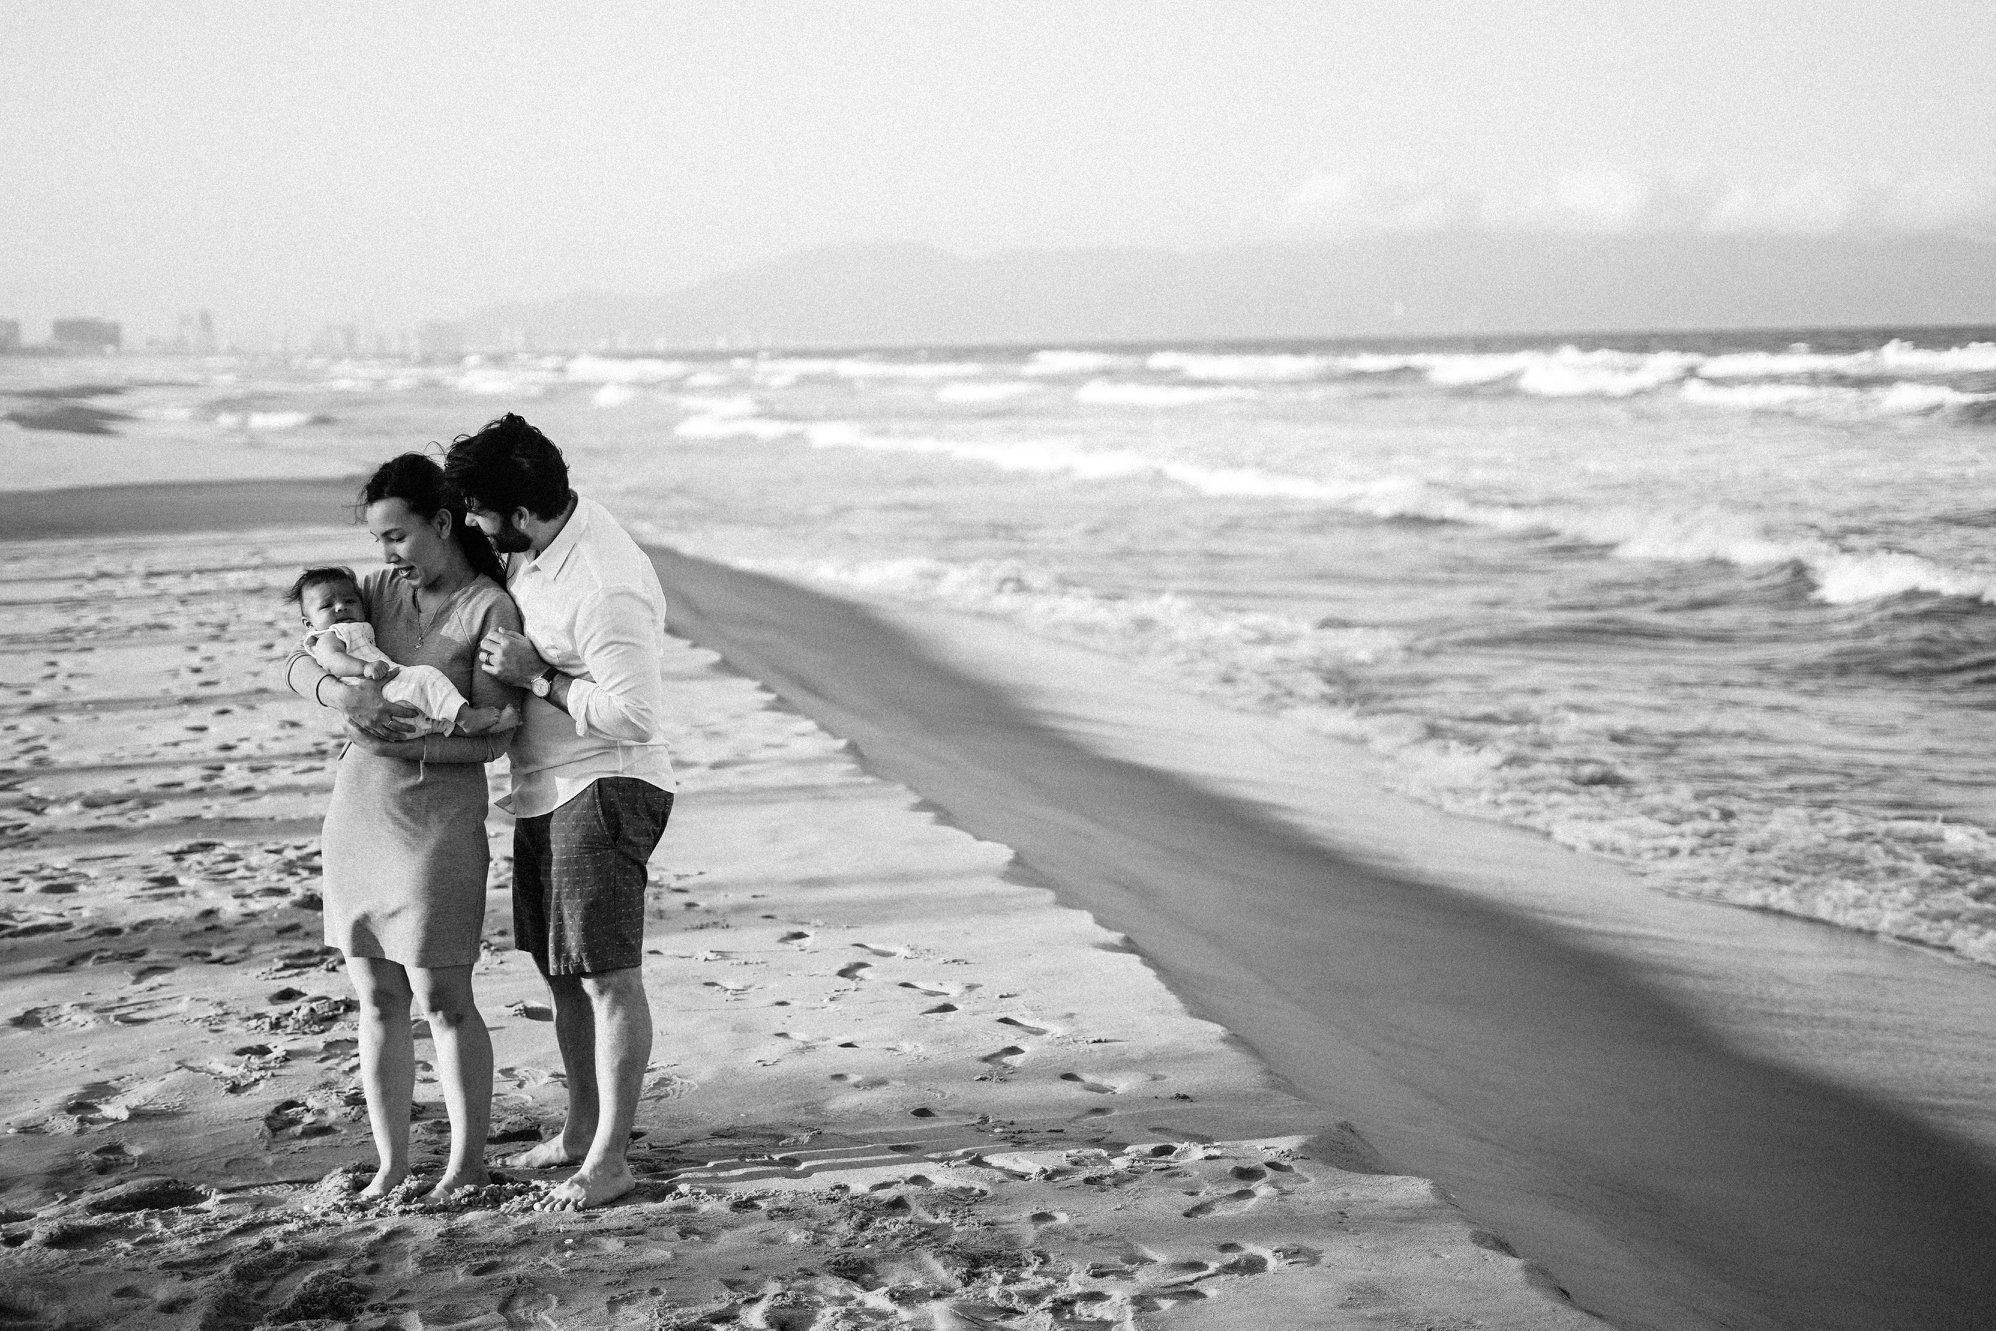 Vietnam Family Photographer | Katei studio | vietnam family photographer | Sai gon family photographer | ho chi minh family photographere | Ha Noi Family photographer | Da Nang family photographer | Hoi An family photographer | dalat family photographer | Phu Quoc Family photographer | Family photographer | vietnam family photography